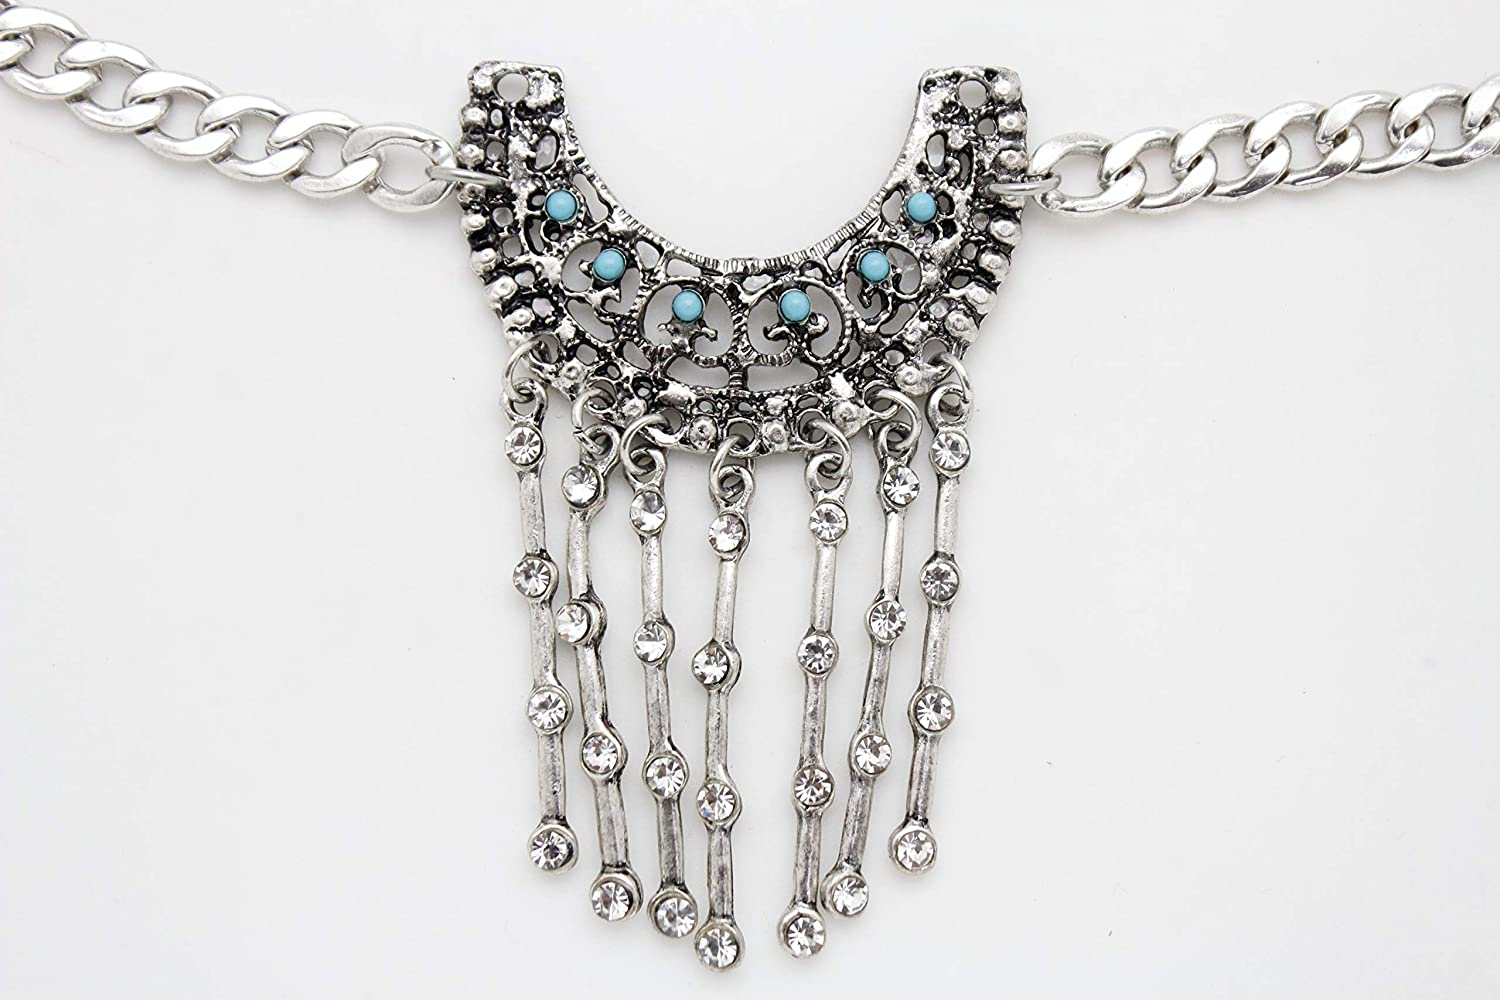 TFJ Women Ethnic Fashion Jewelry Boot Chain Bracelet Silver Metal Bling Shoe Anklet Vintage Charm Turquoise Blue